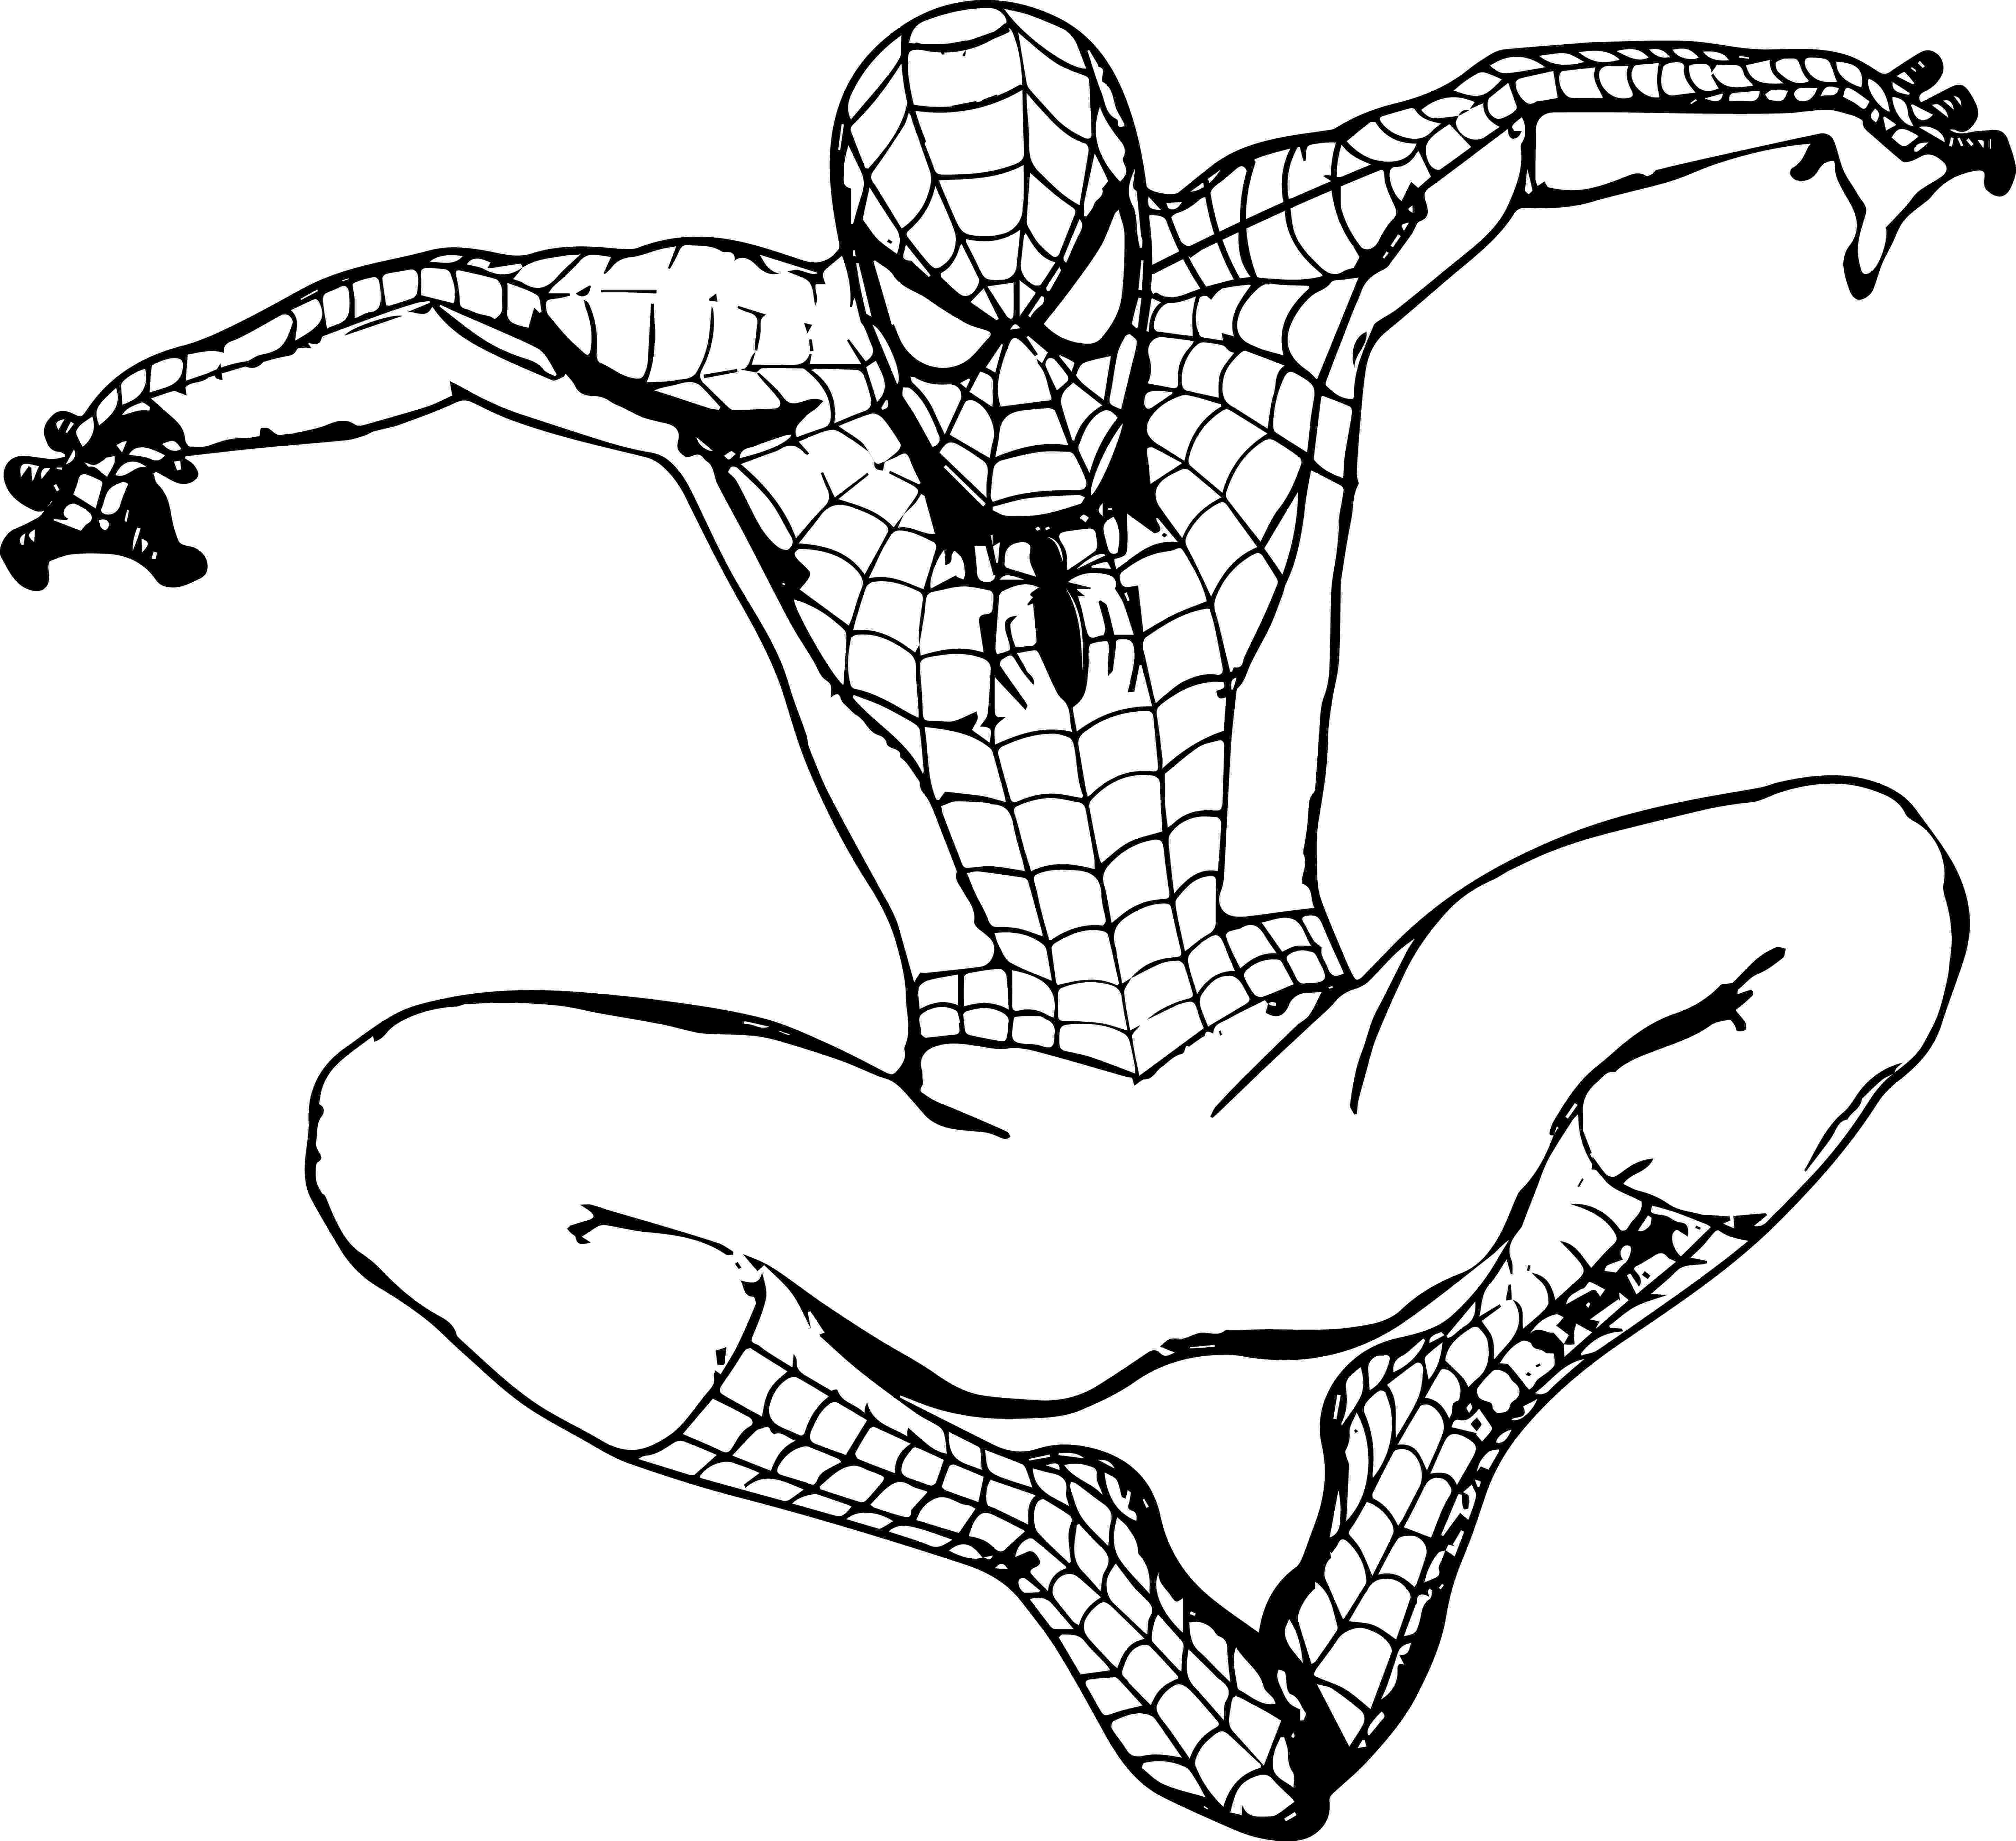 colouring templates spiderman 19 spider man coloring pages pdf psd free premium colouring templates spiderman